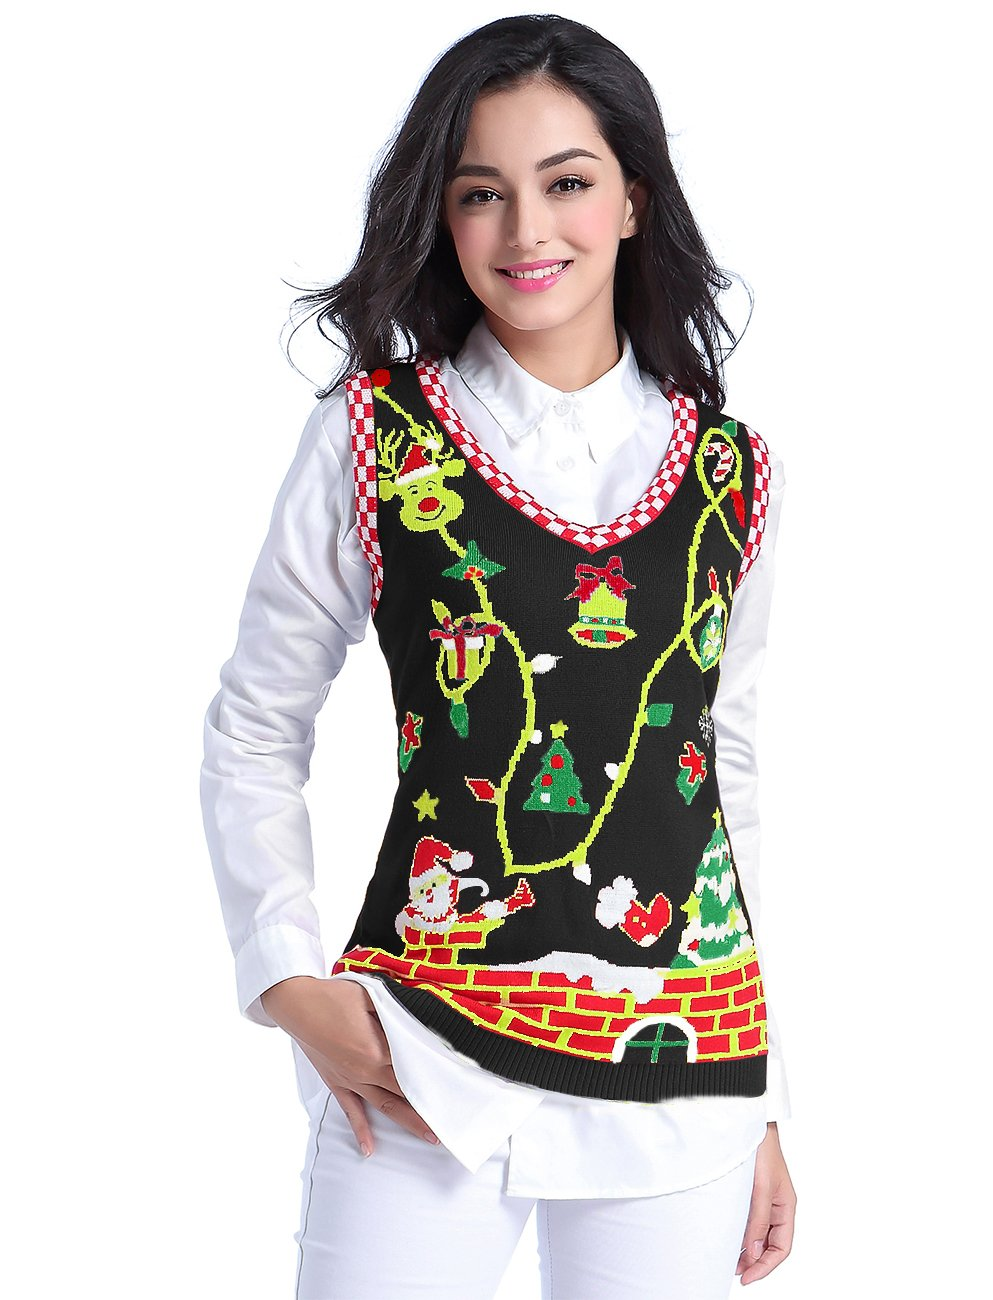 v28 Ugly Christmas Sweater, Women Girl Cute Vintage Knit Xmas Pulli Sweater Vest (XL, Black)